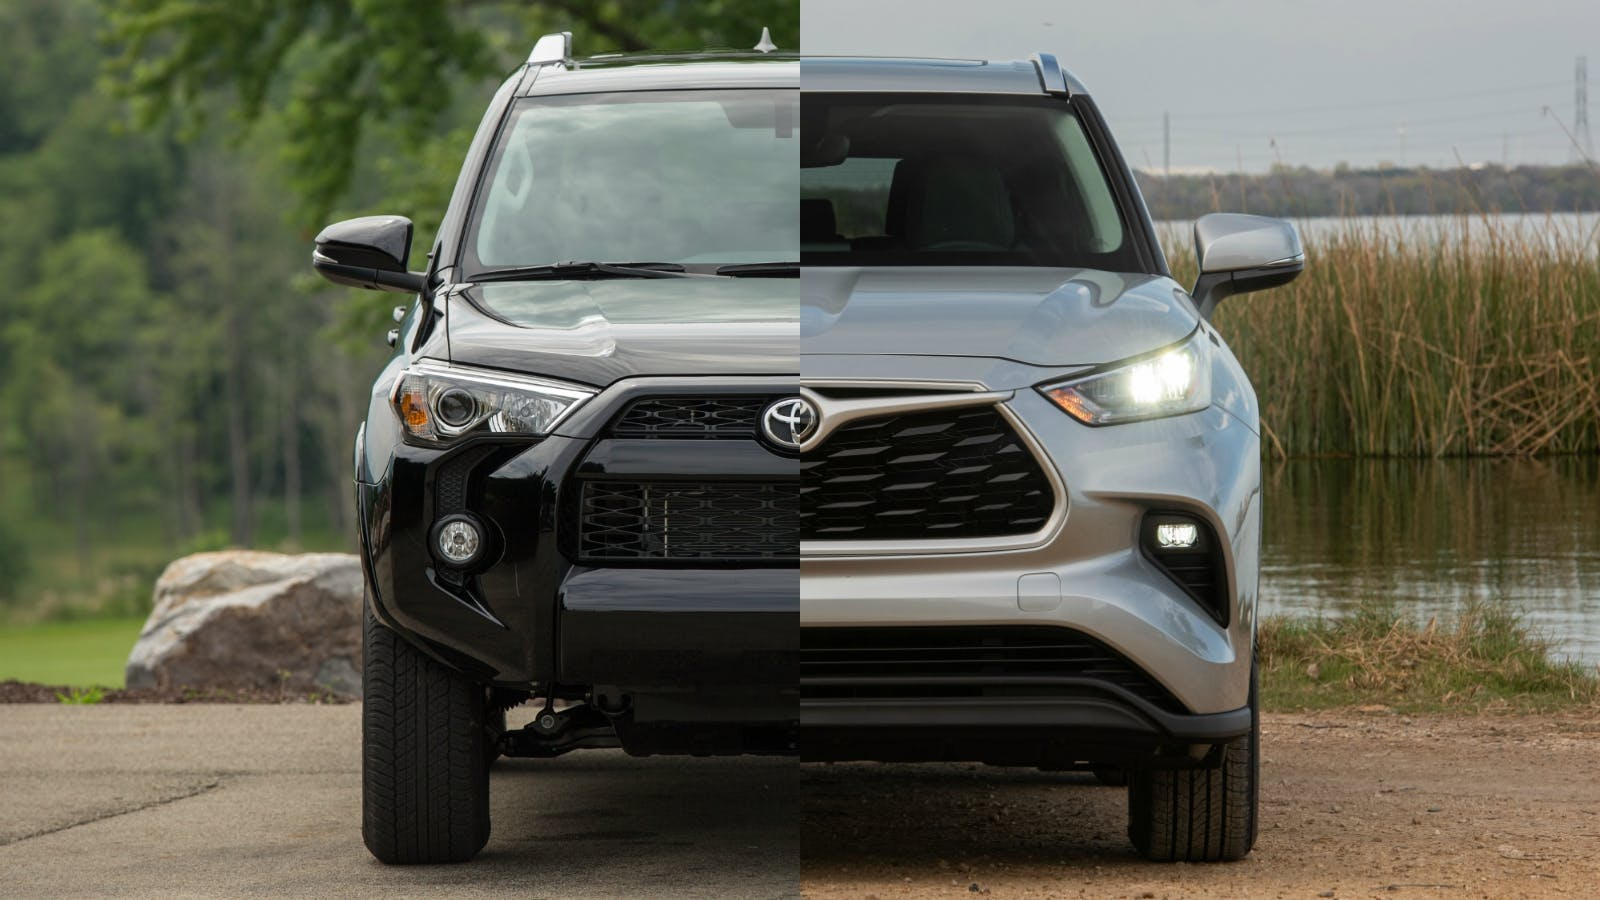 4WD vs AWD: Here's the Difference